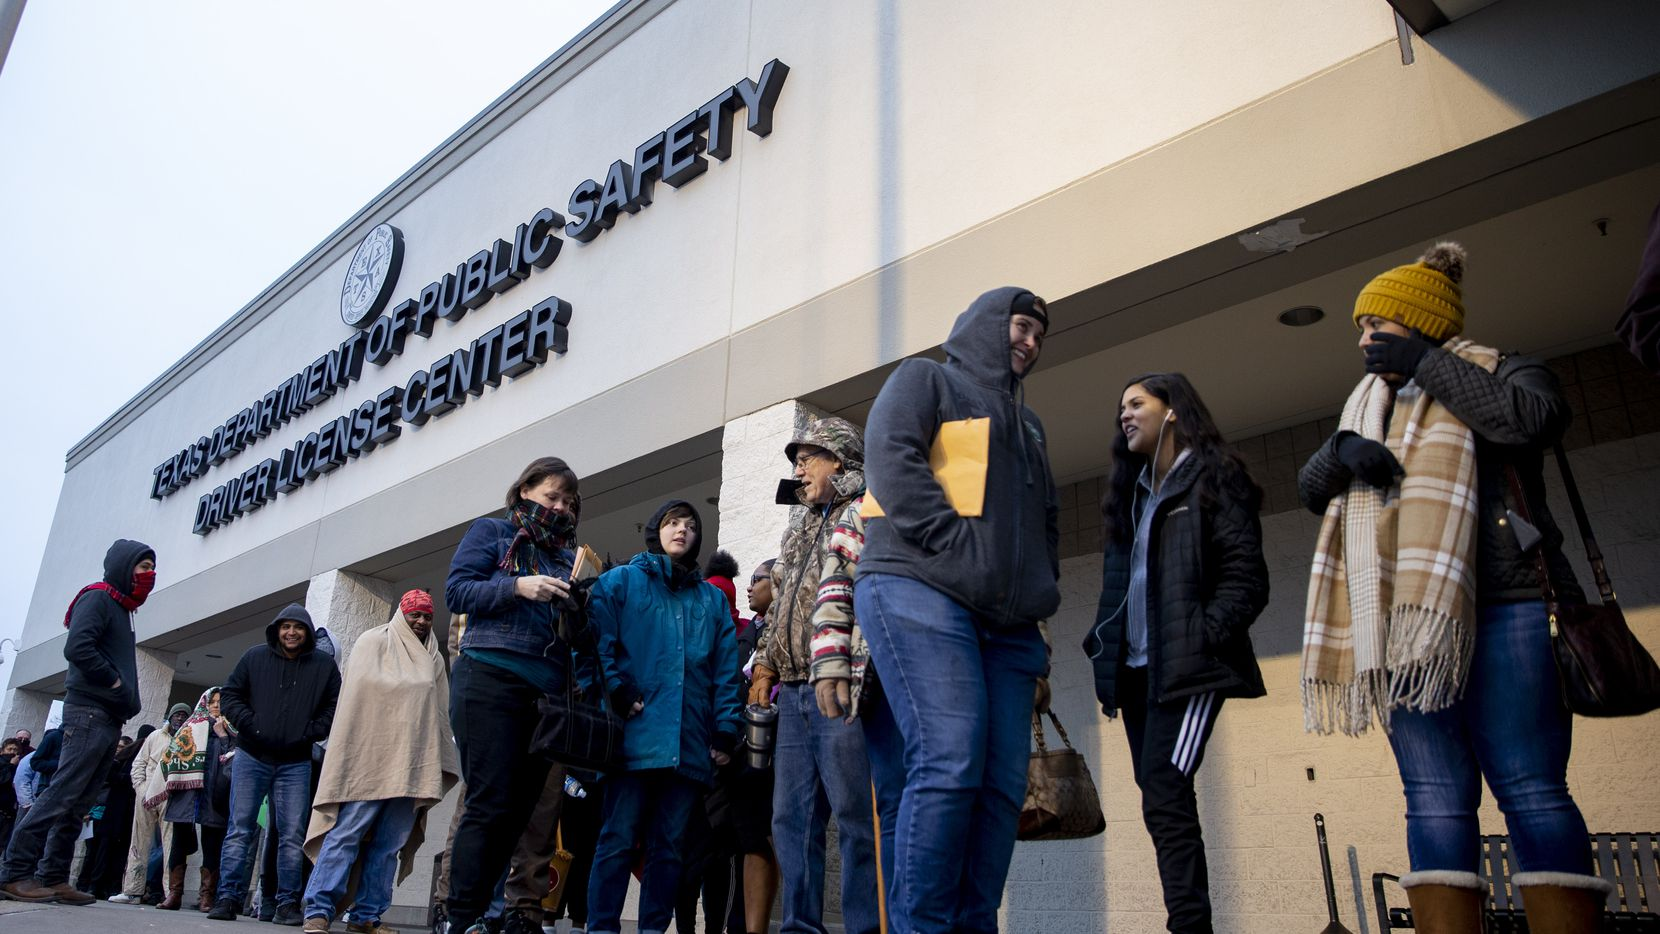 People line up outside the entrance at the Texas Department of Public Safety's driver's license mega-center in Garland.